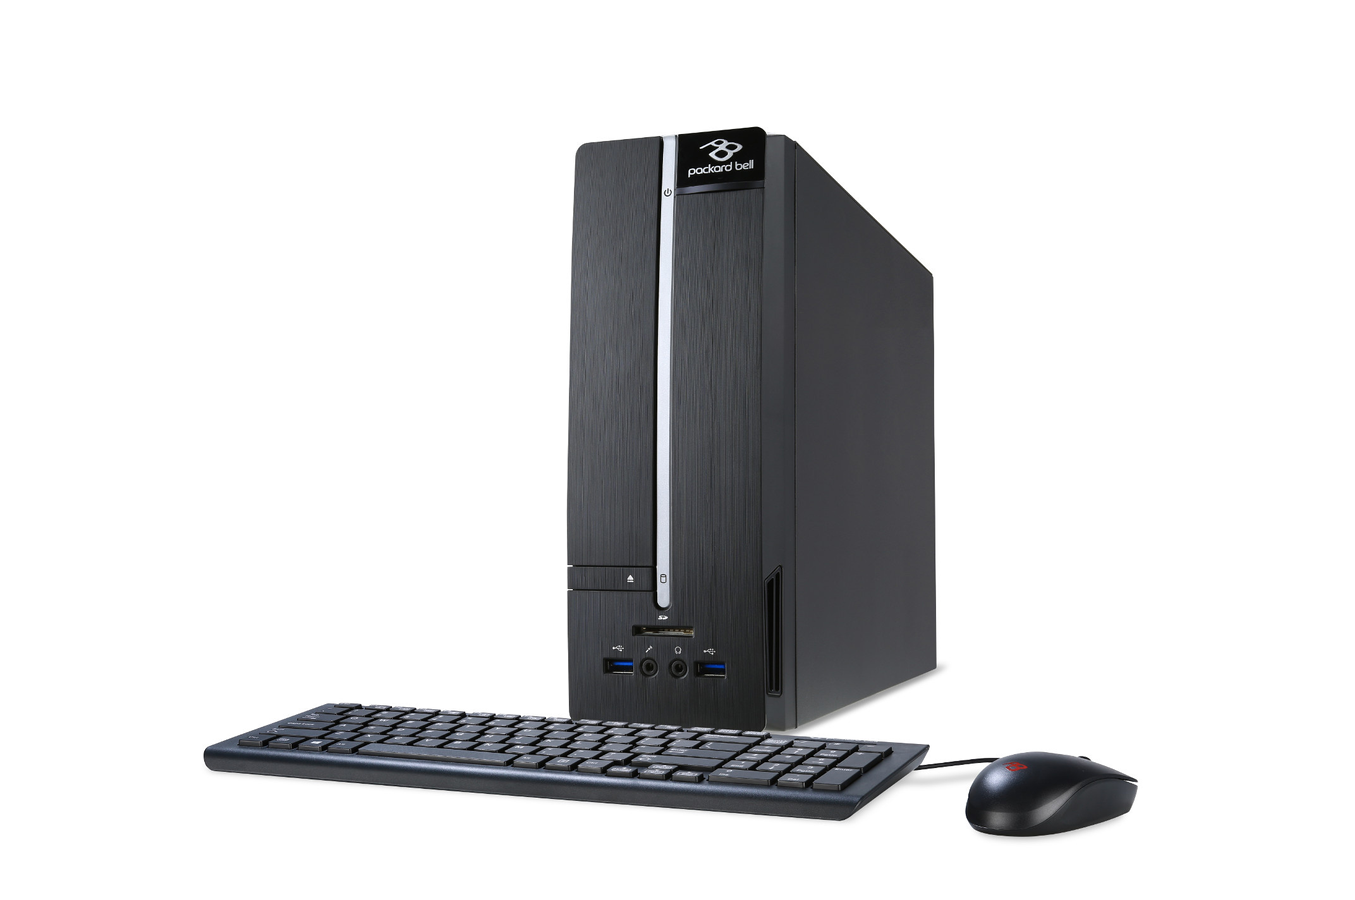 packard bell imedia s ab4g1tu10 ordinateur de bureau ordinateurpascher. Black Bedroom Furniture Sets. Home Design Ideas